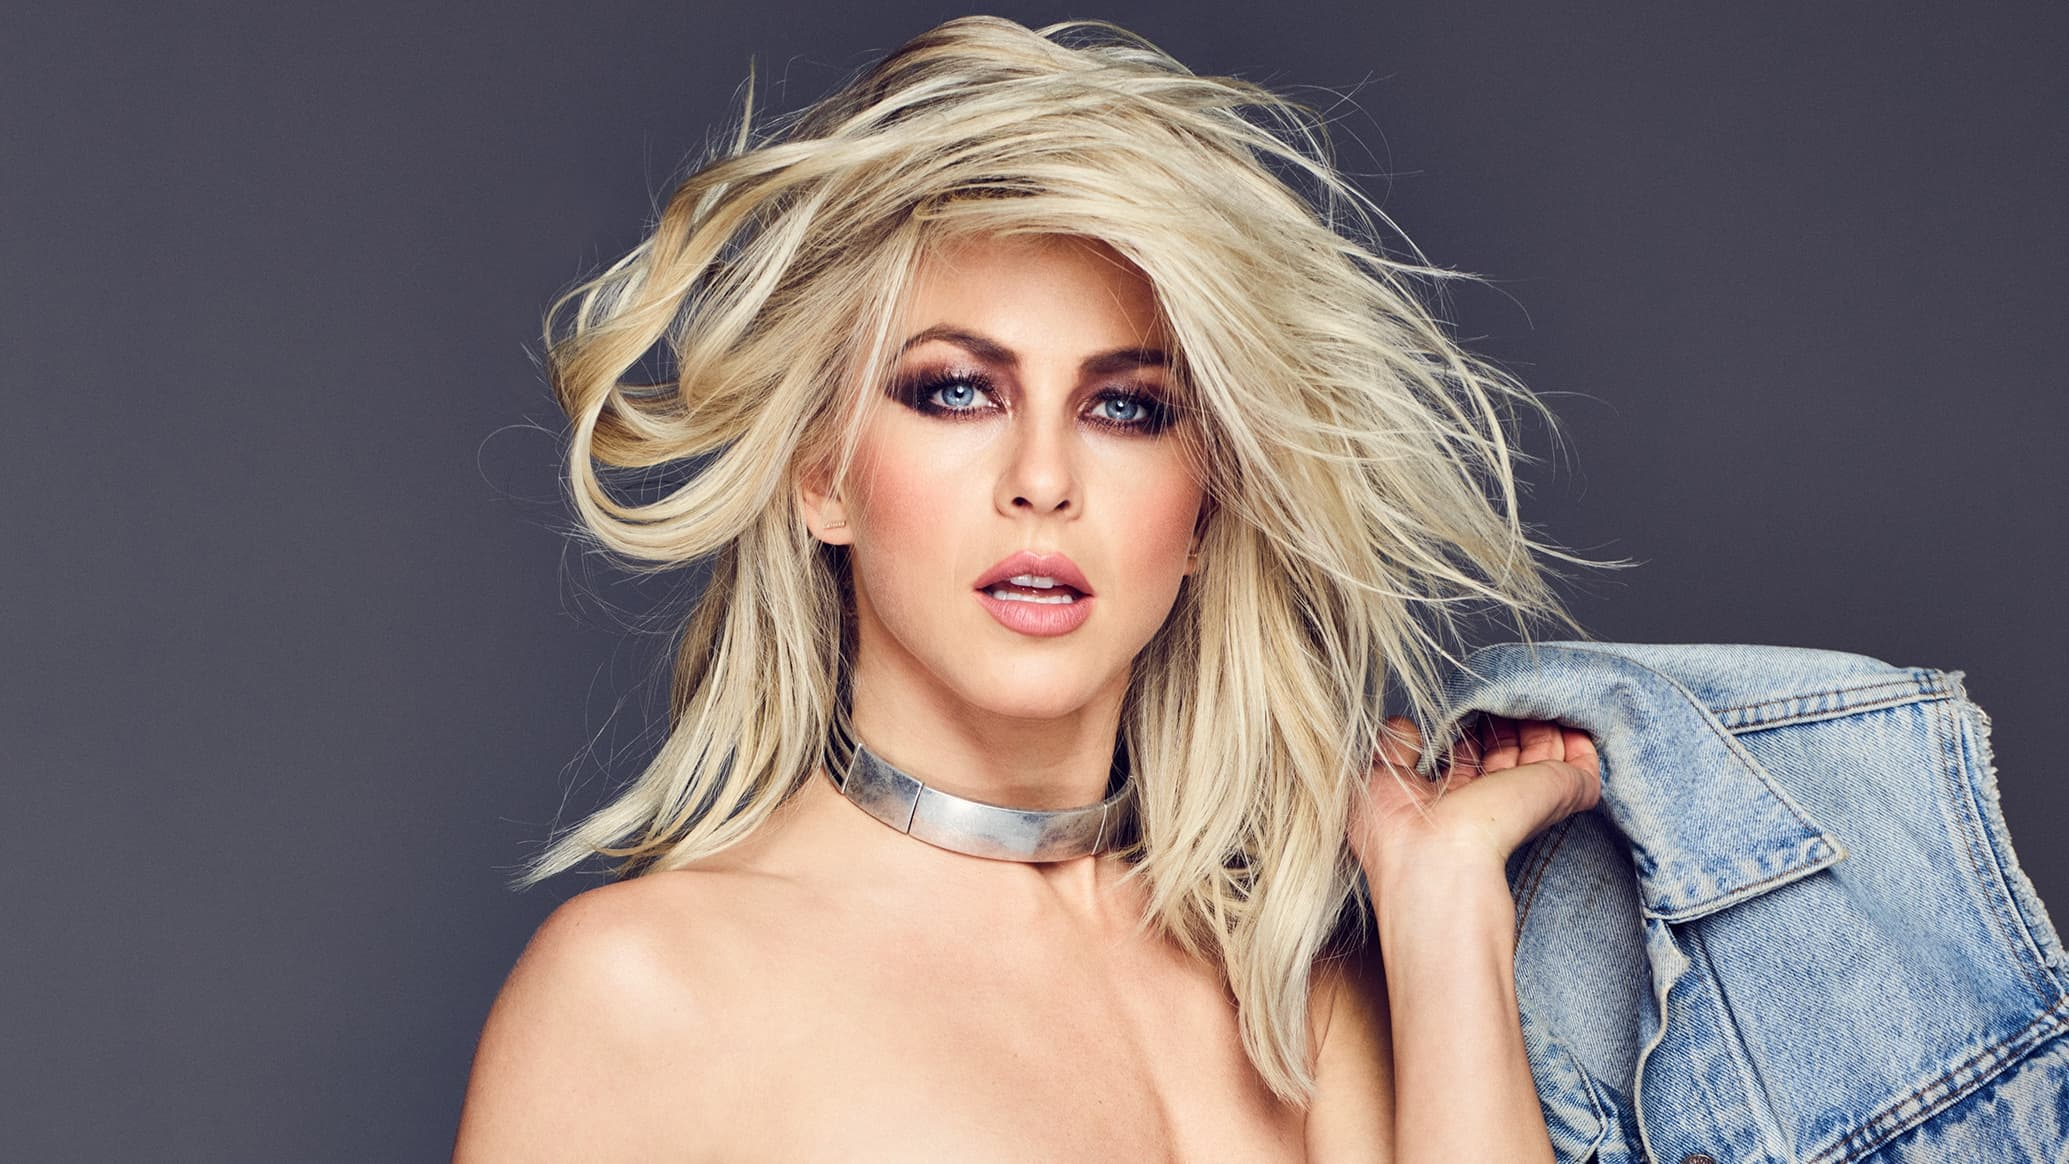 Car Wallpapers For Android Hd Julianne Hough Wallpapers 23 High Quality Images